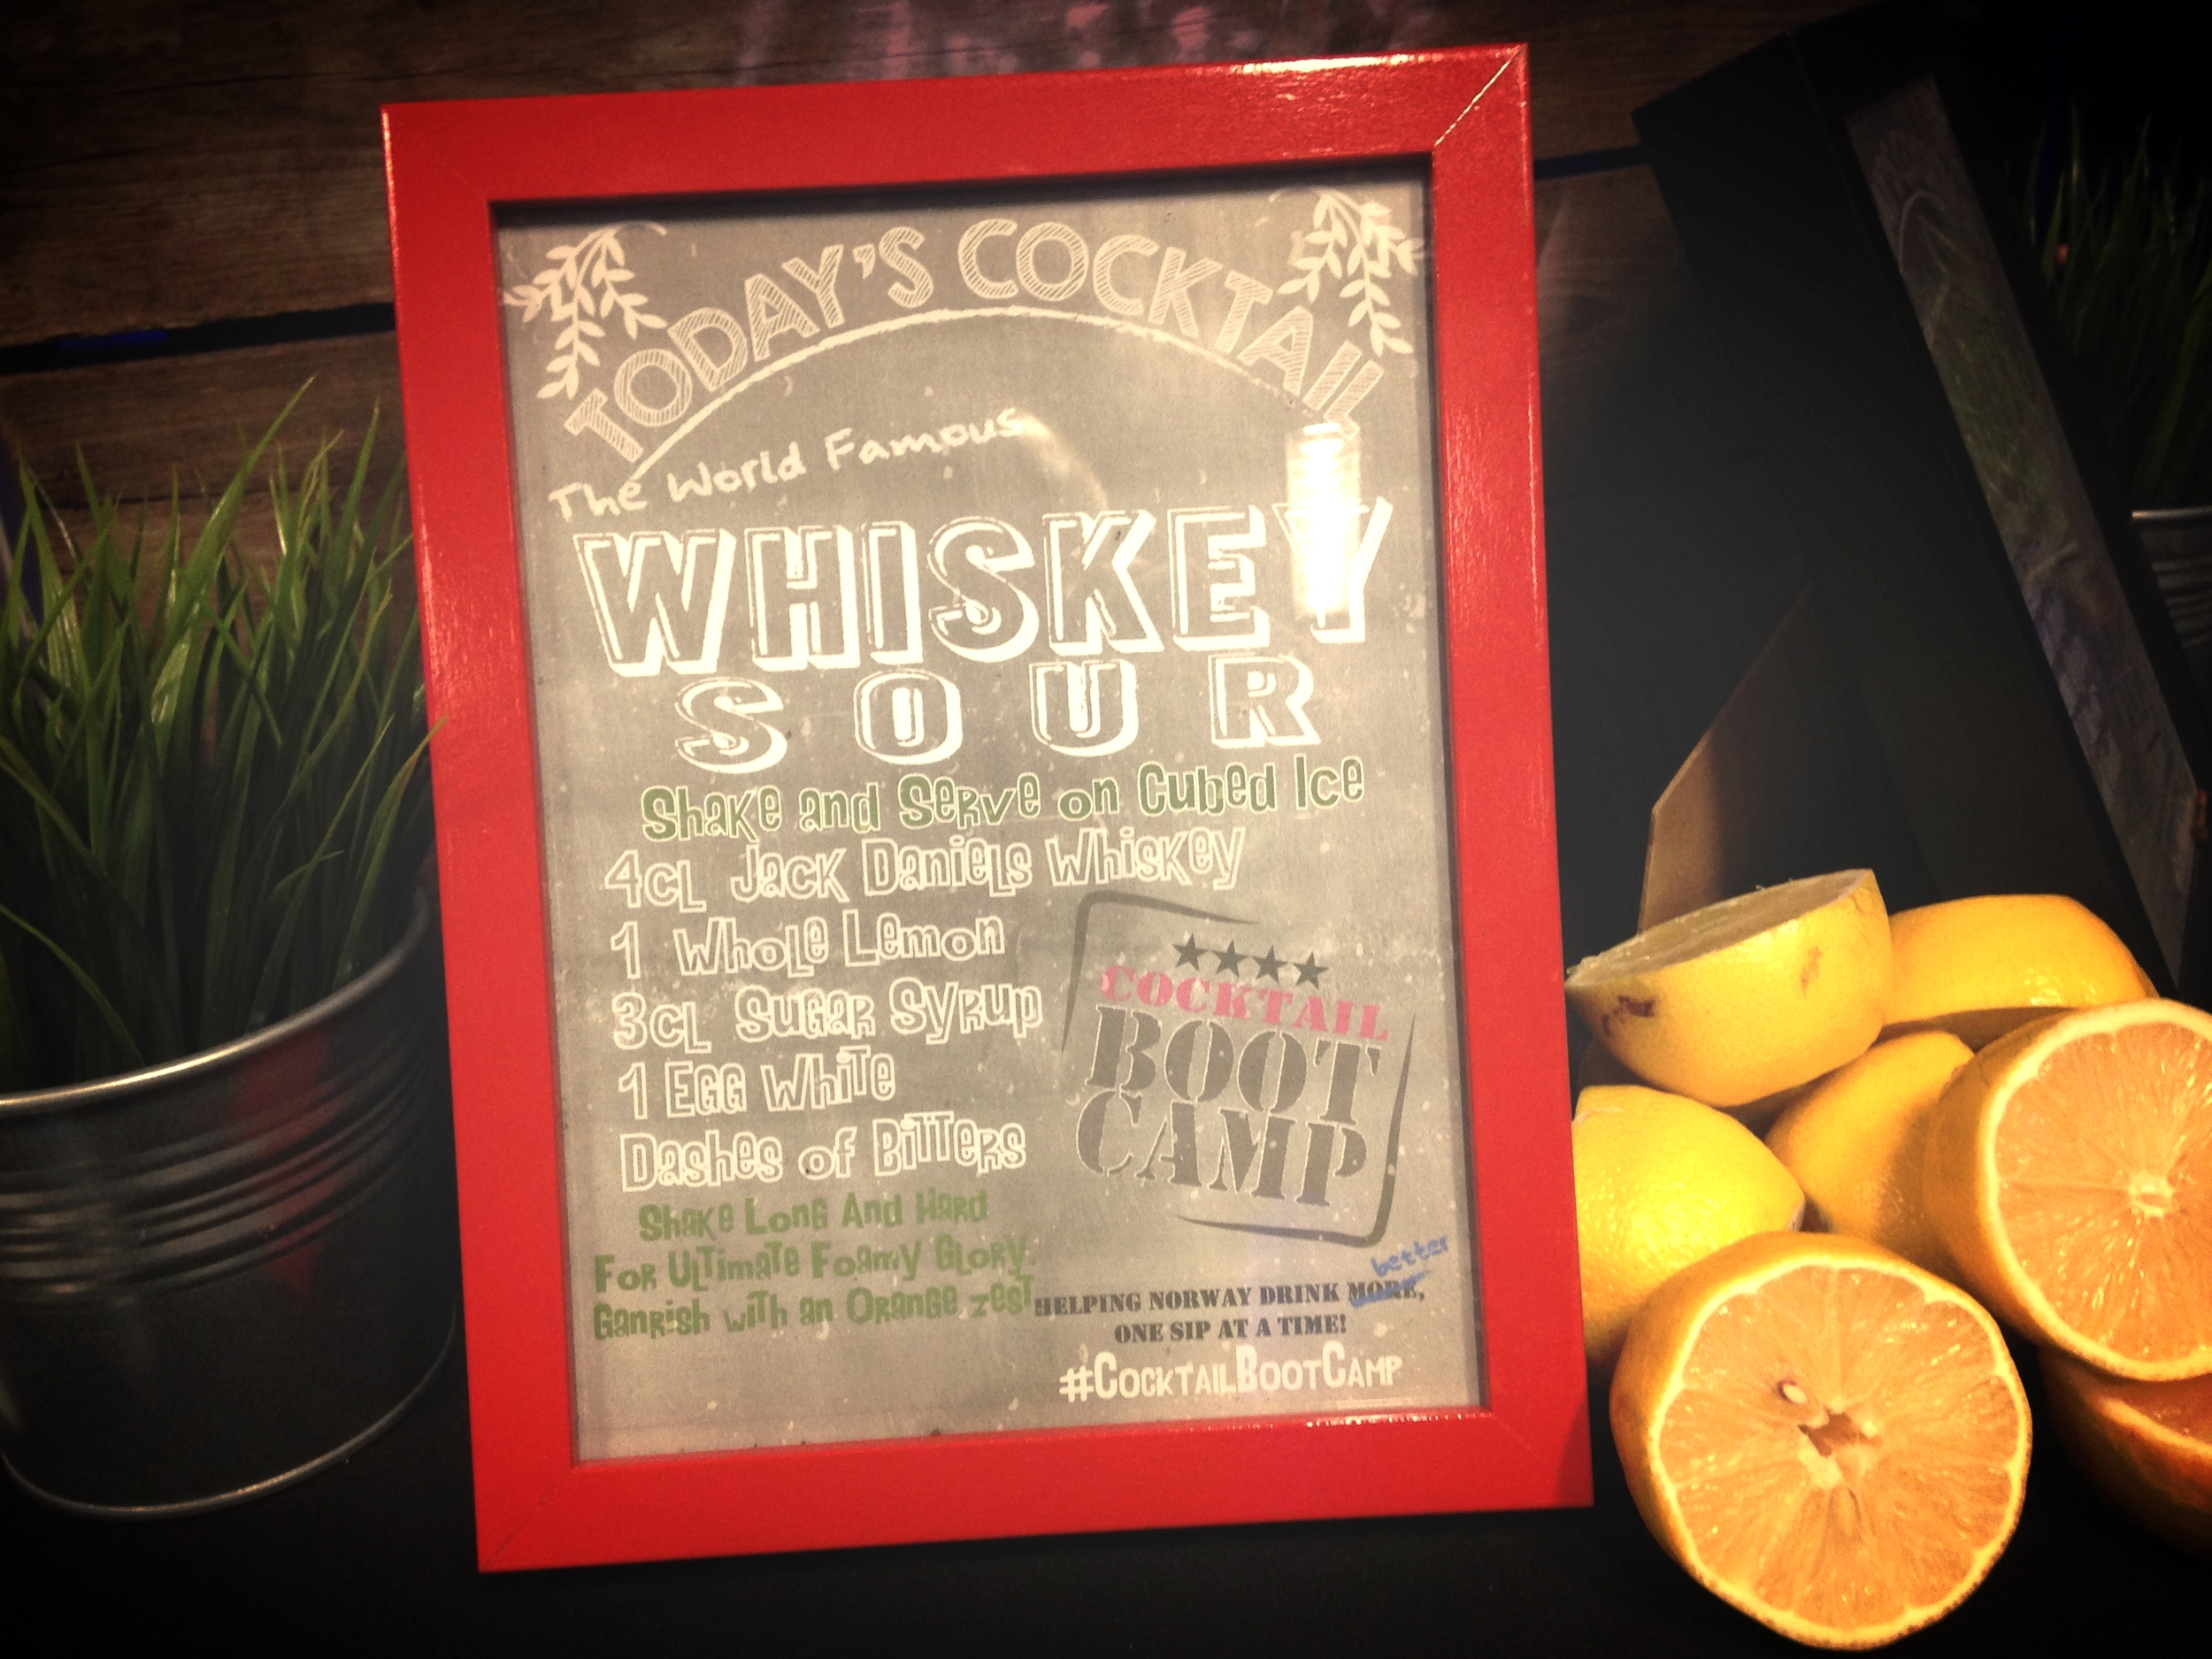 Cocktail BootCamp Whiskey Sour Frame